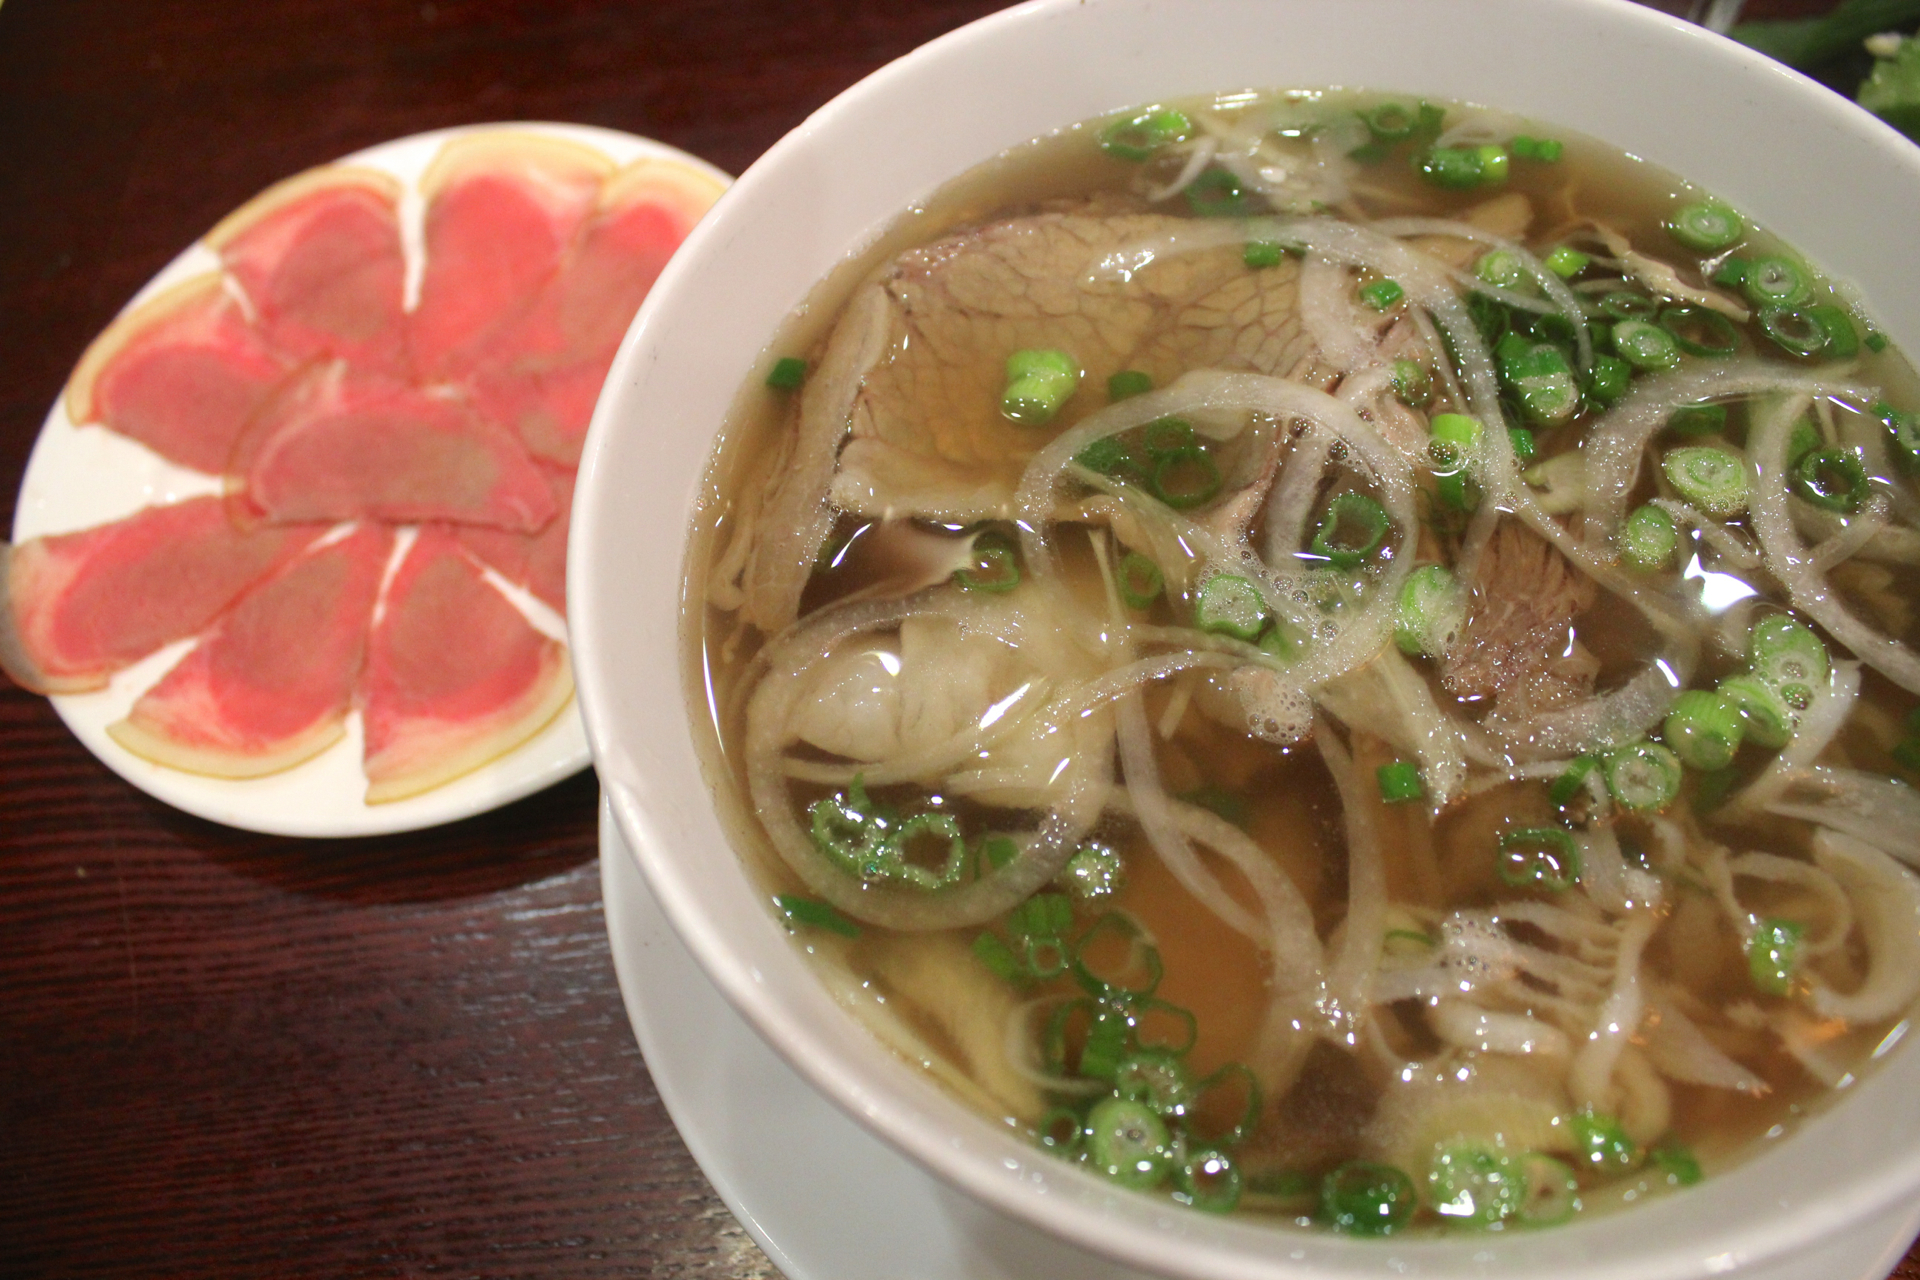 The smoked veal special pho at Pho 90 Degree.